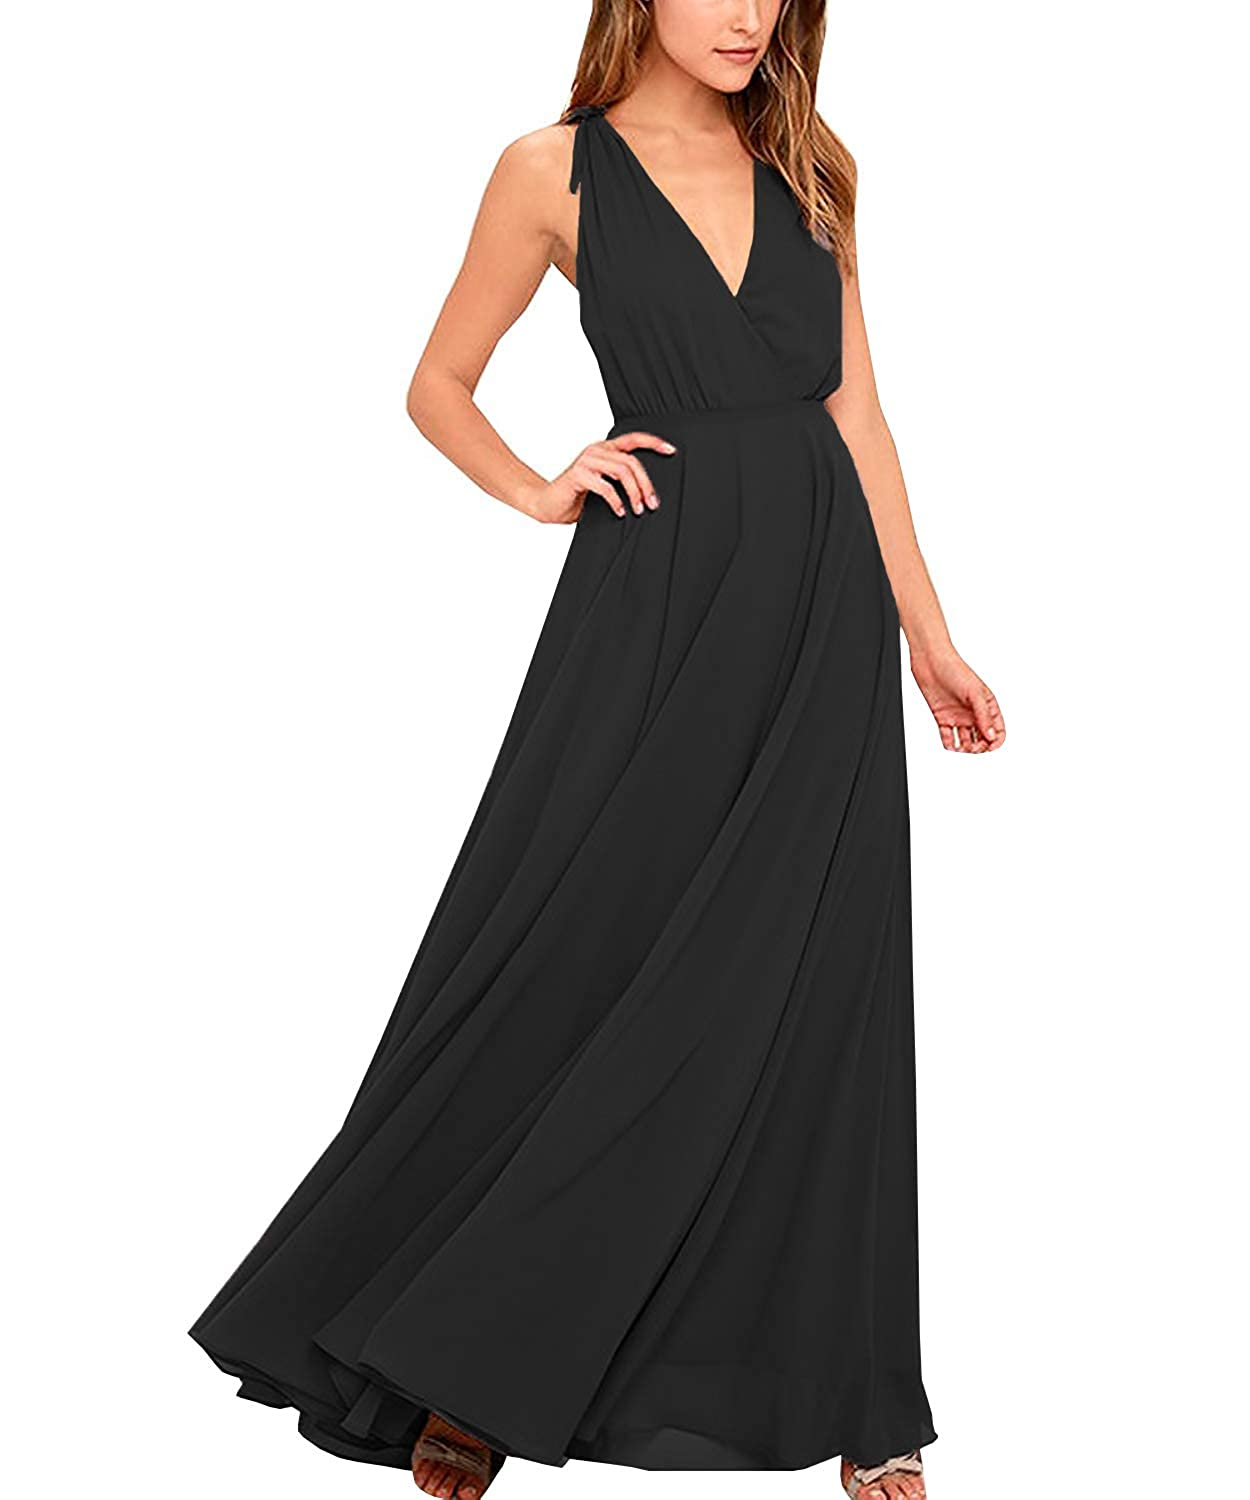 a6cbb4827a6 WuliDress Women s Chiffon V Neck Bridesmaid Dresses for Weddings Long  Sleeveless Formal Prom Evening Gown at Amazon Women s Clothing store